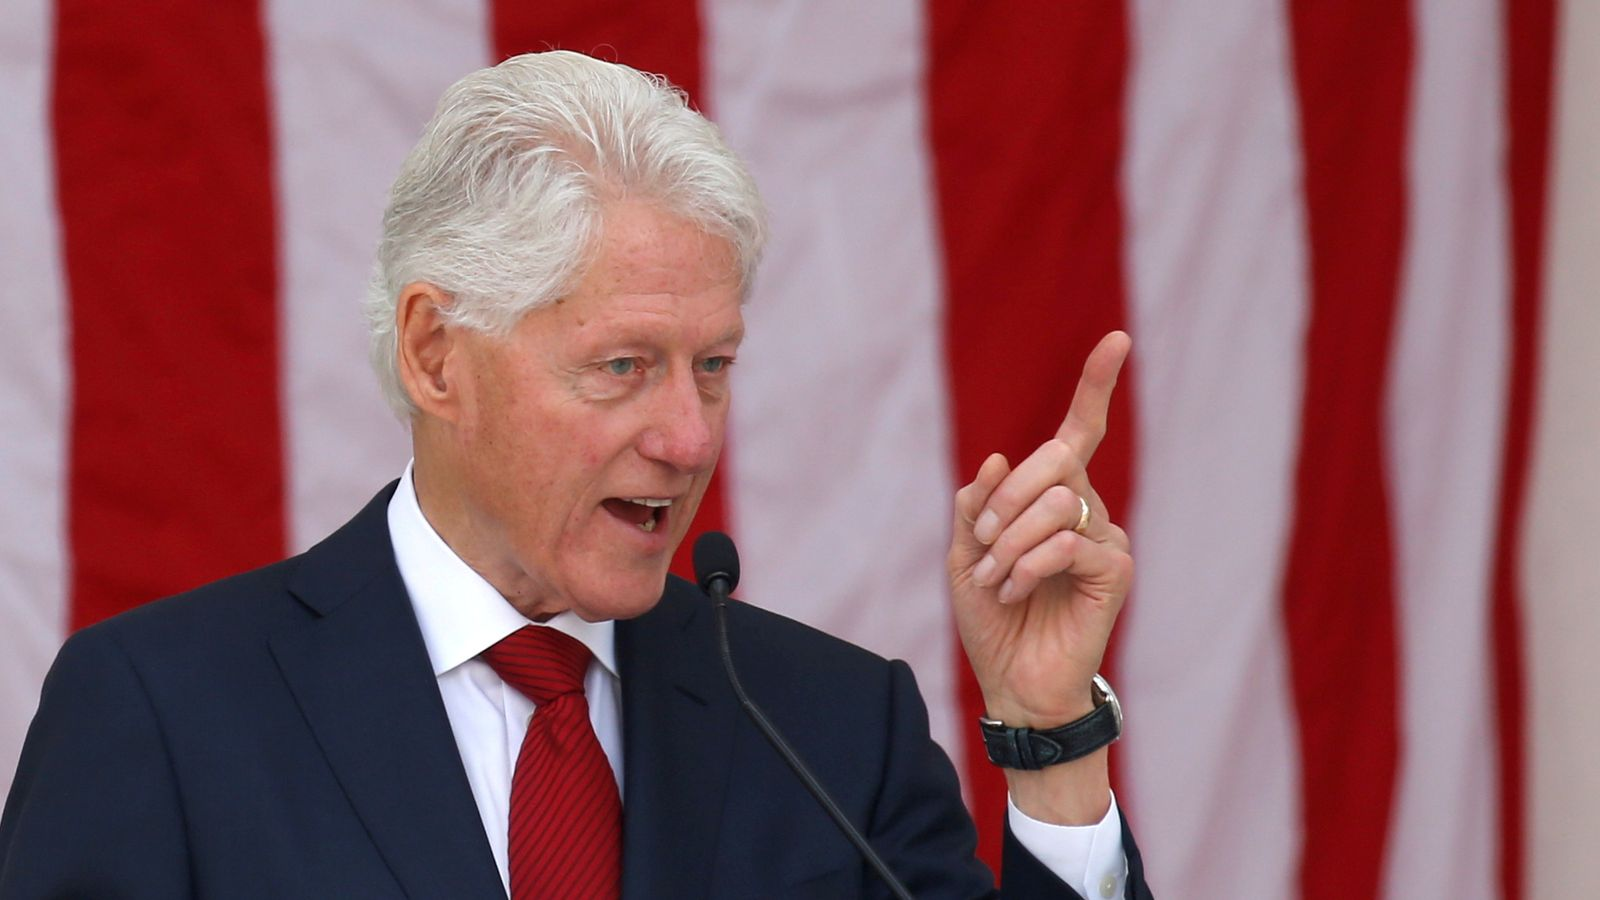 Bill Clinton: Former US president 'responding well' to hospital treatment for infection